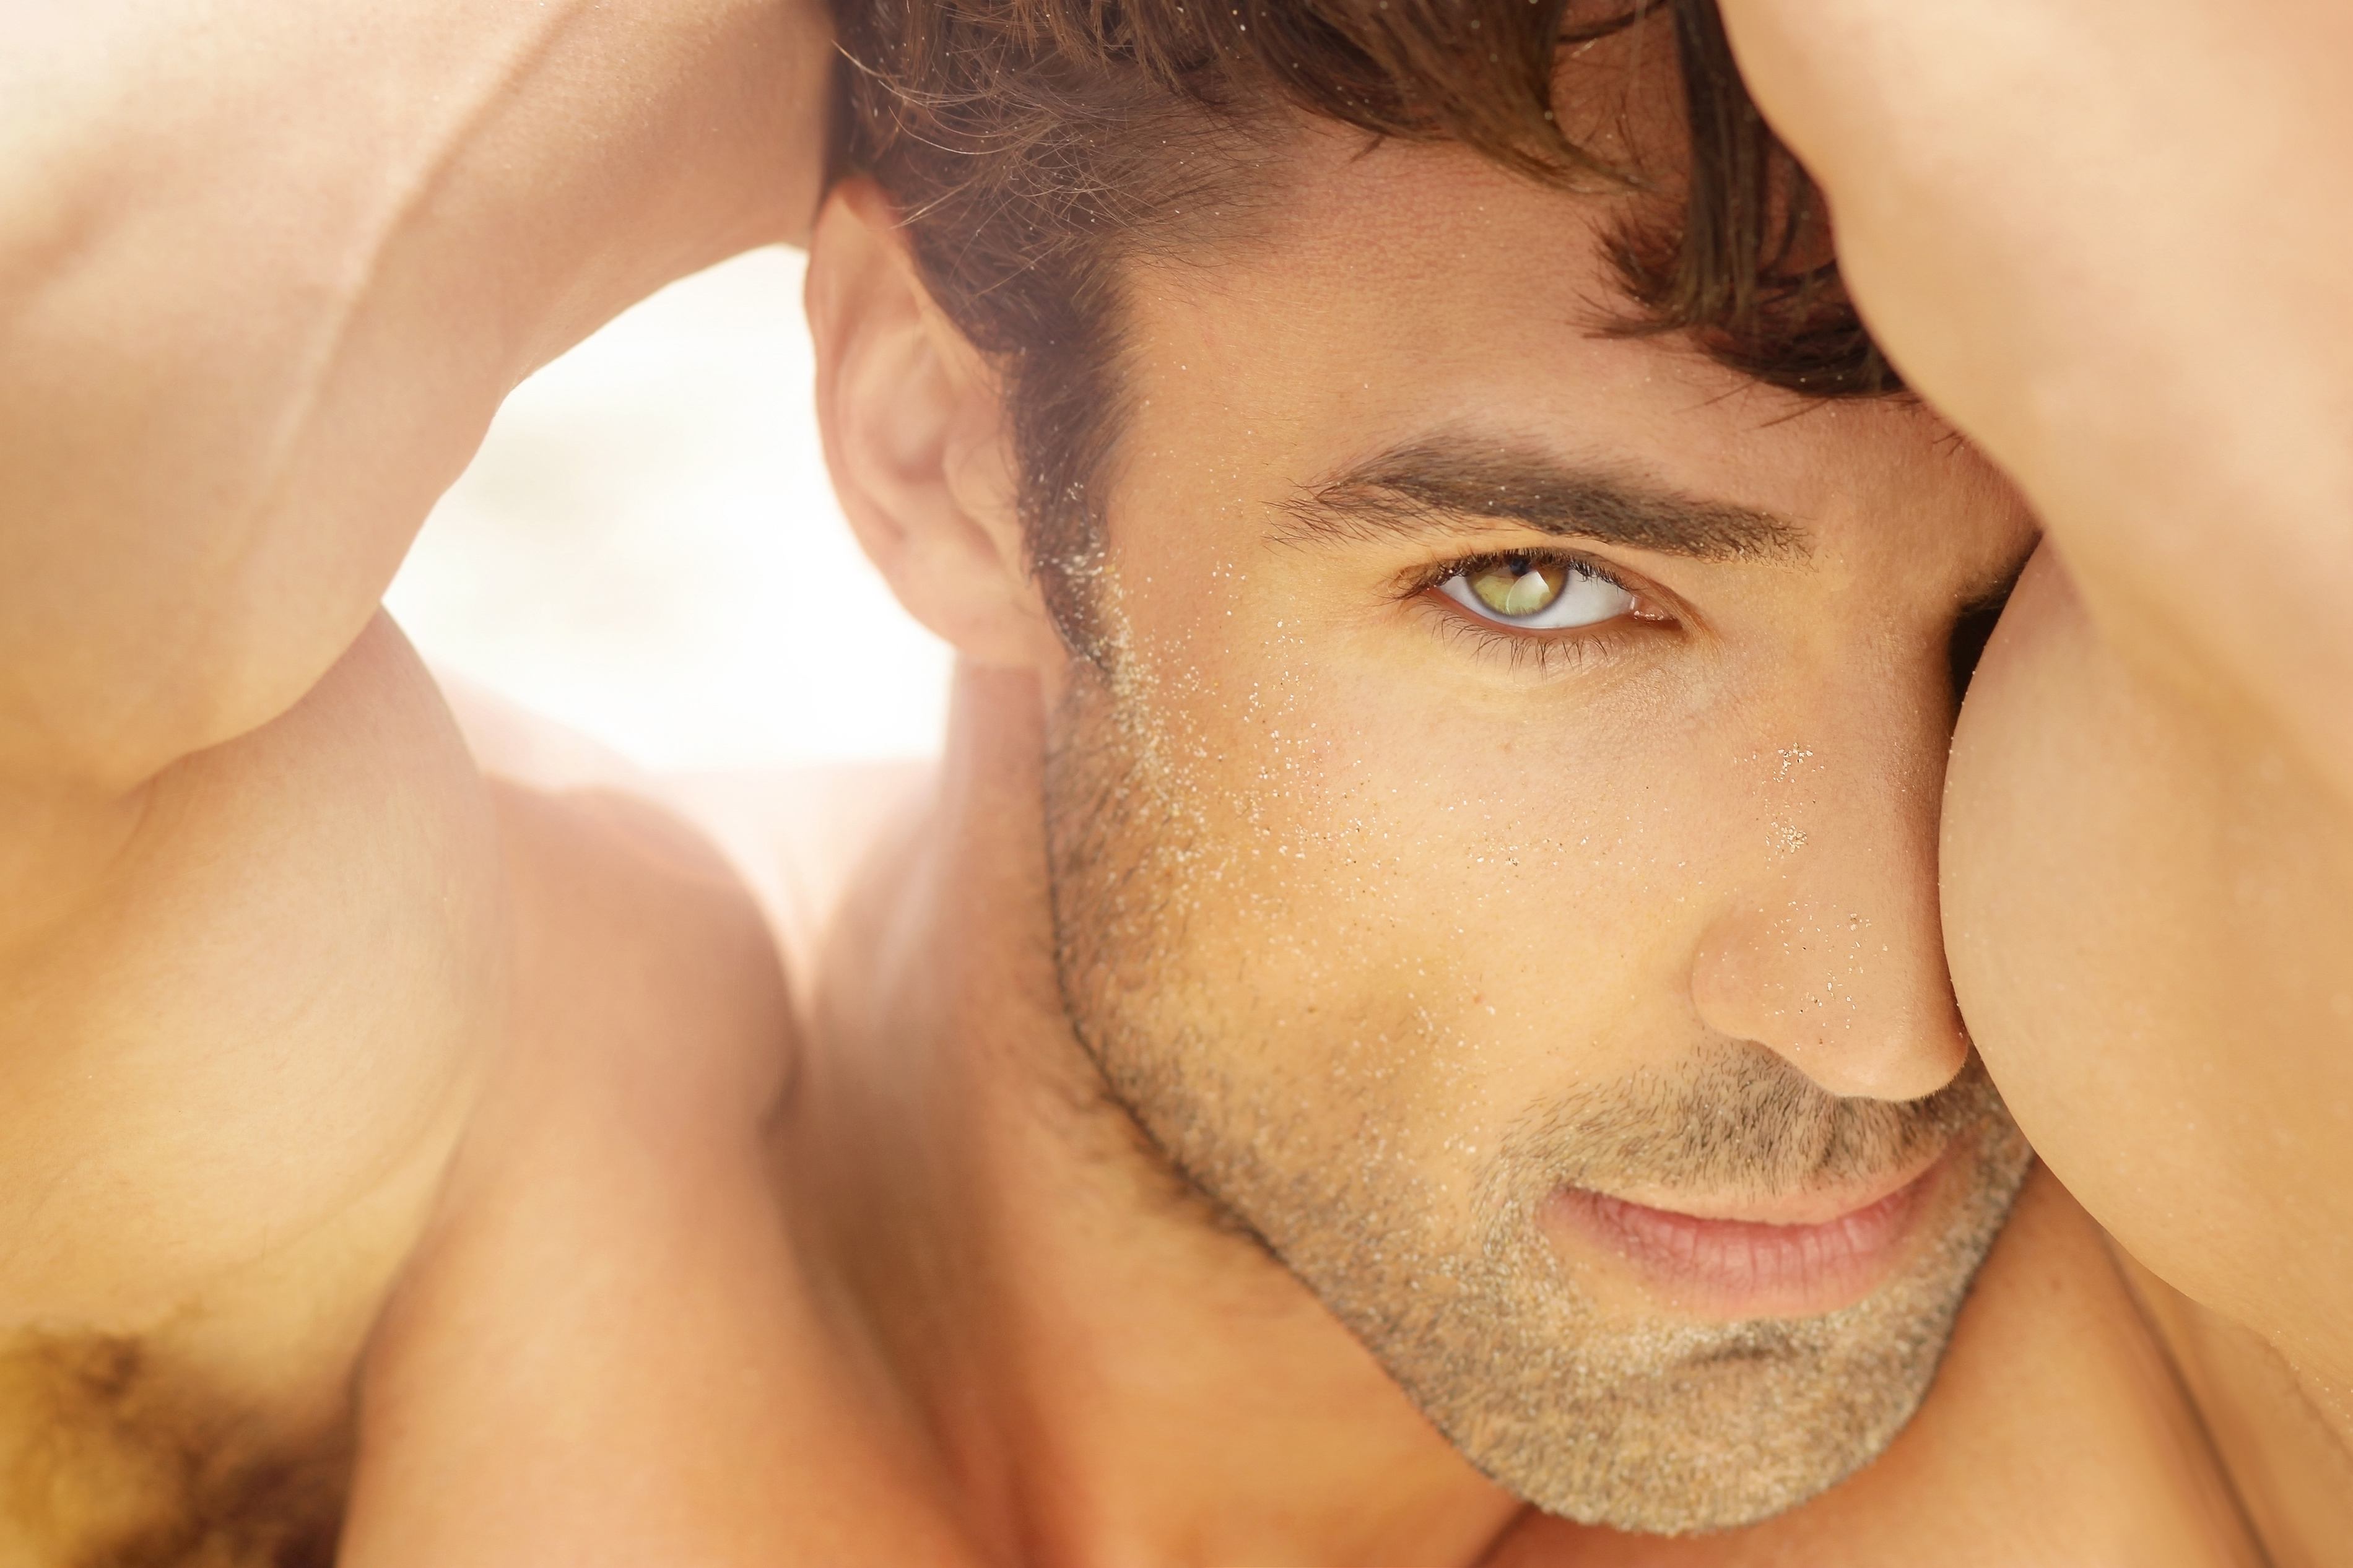 What's the future of men's grooming? Botox and no baldness according to experts